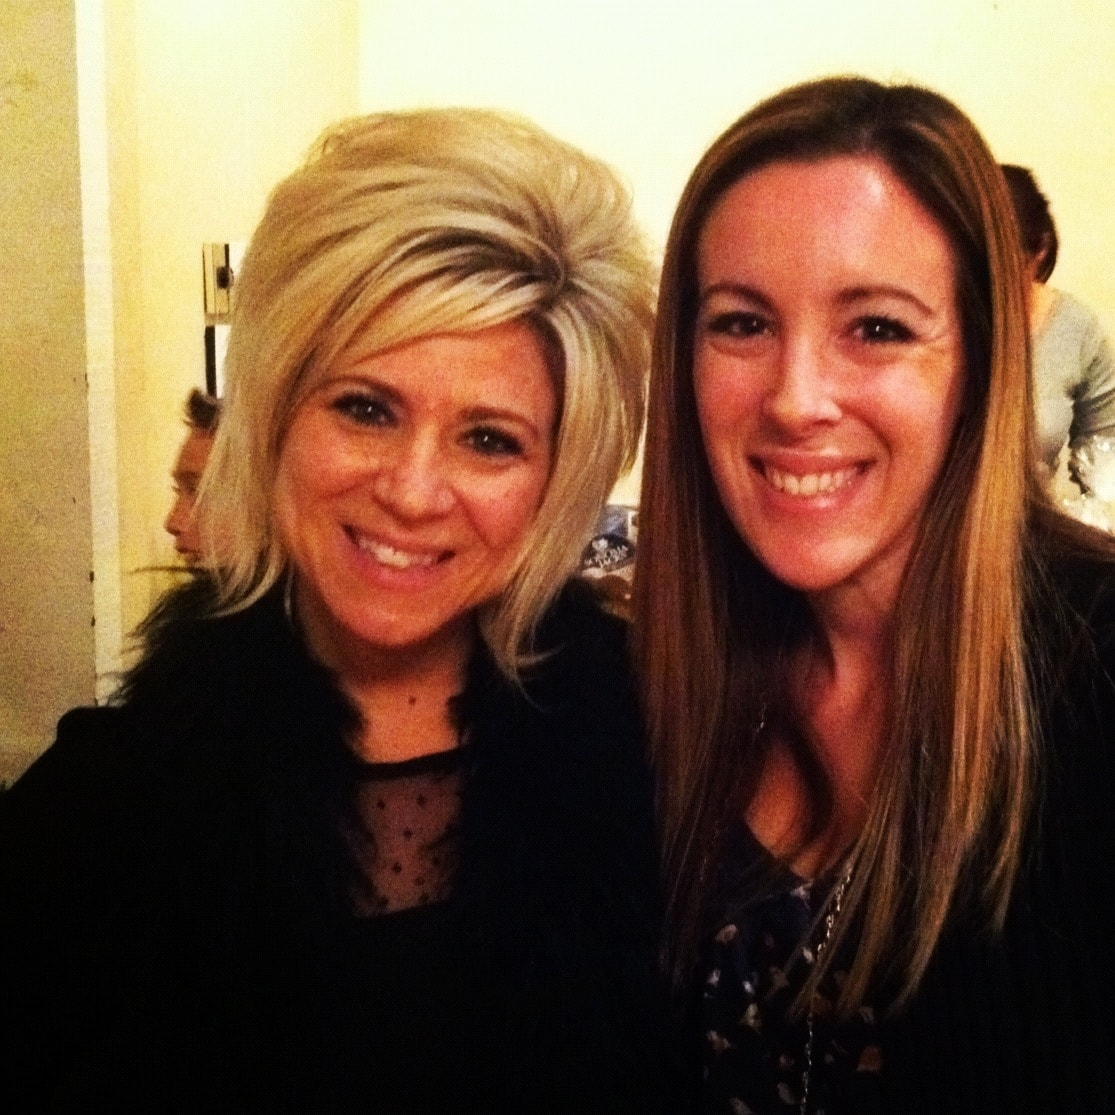 My Evening With The Long Island Medium - Theresa Caputo